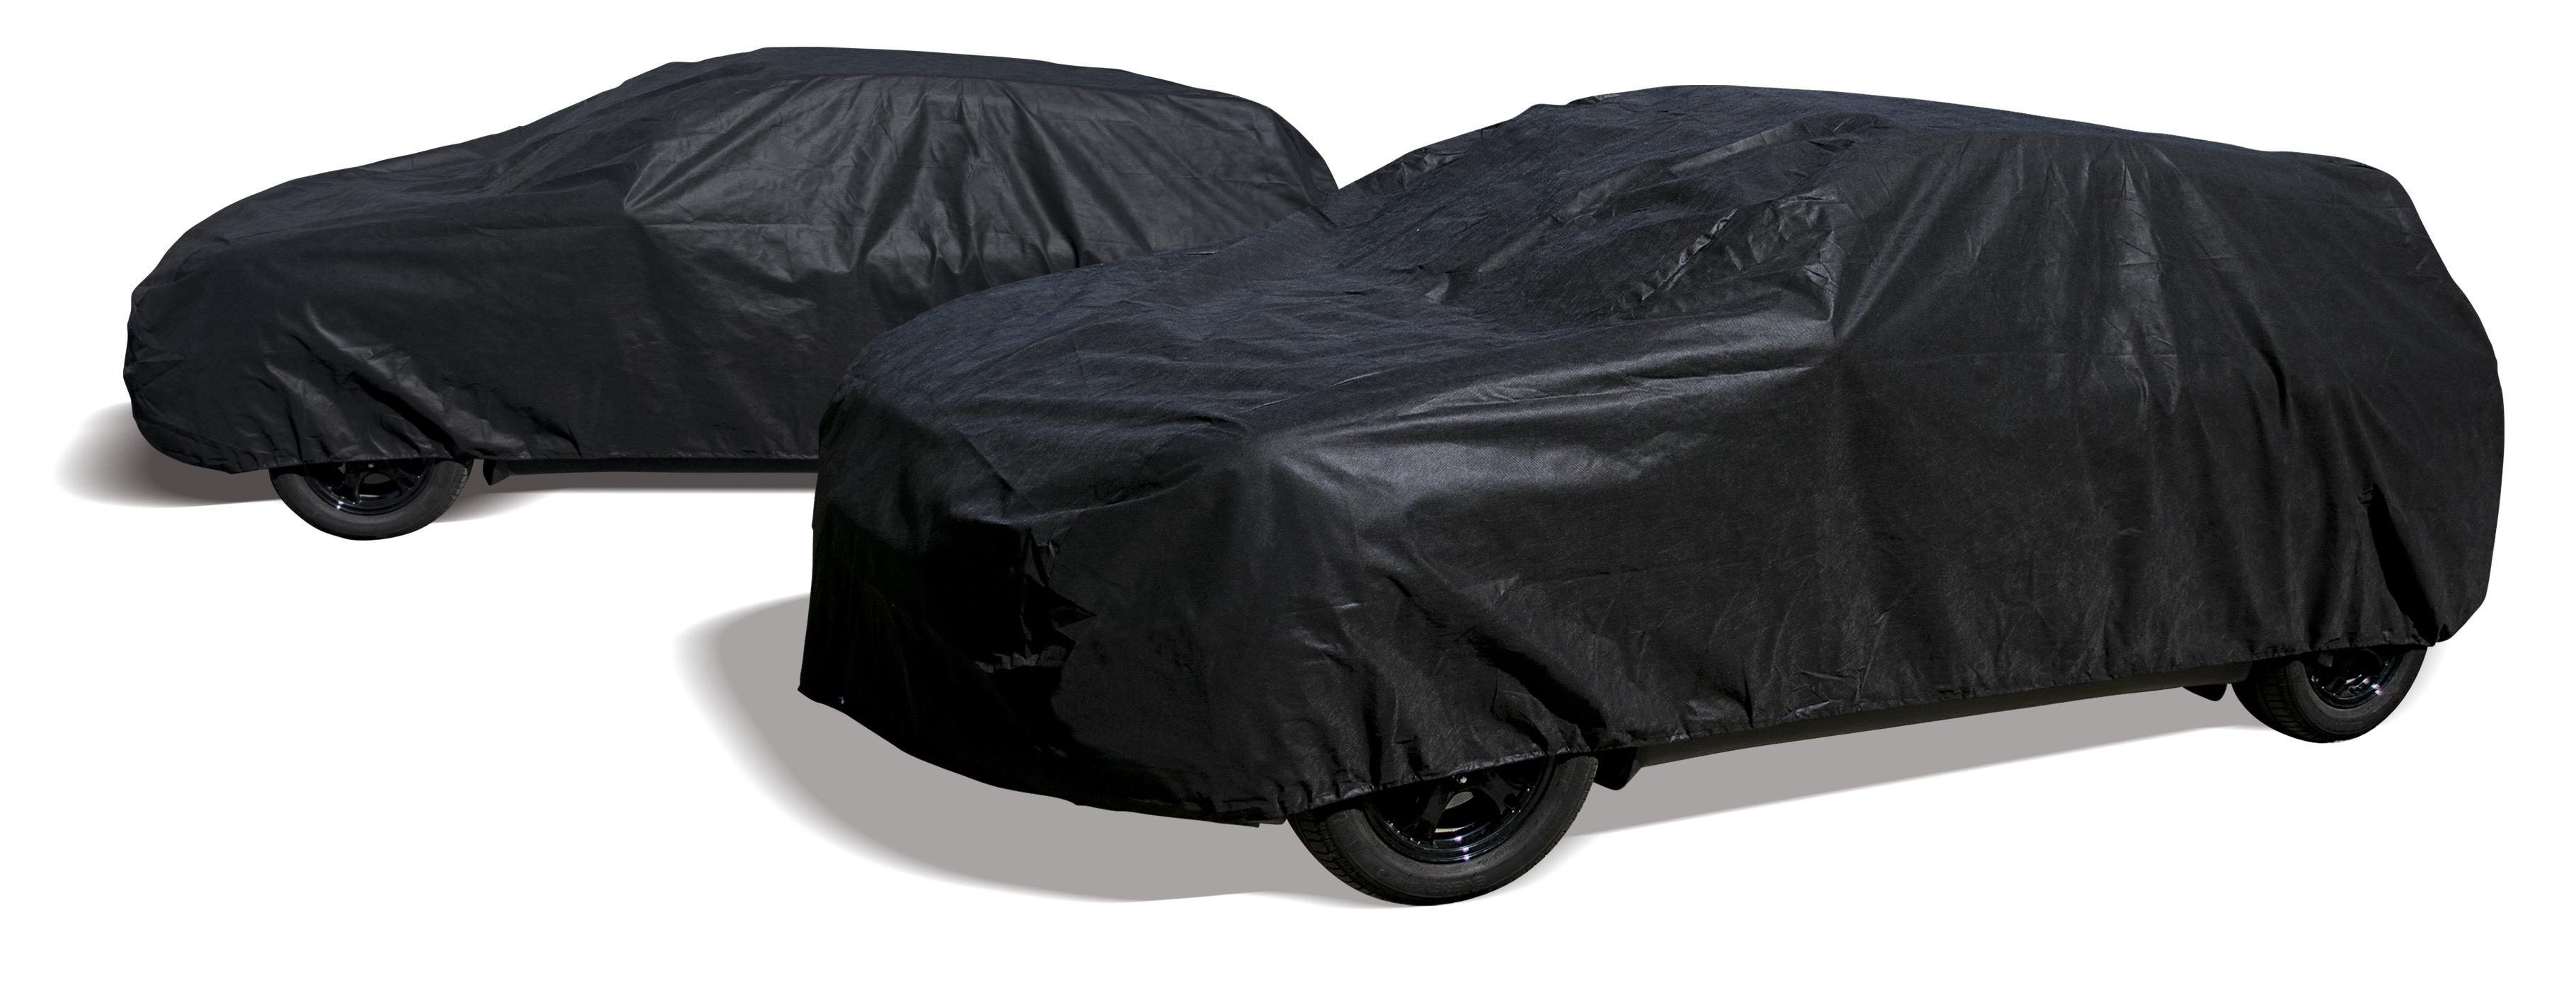 Car cover CARPASSION 10020 expert knowledge